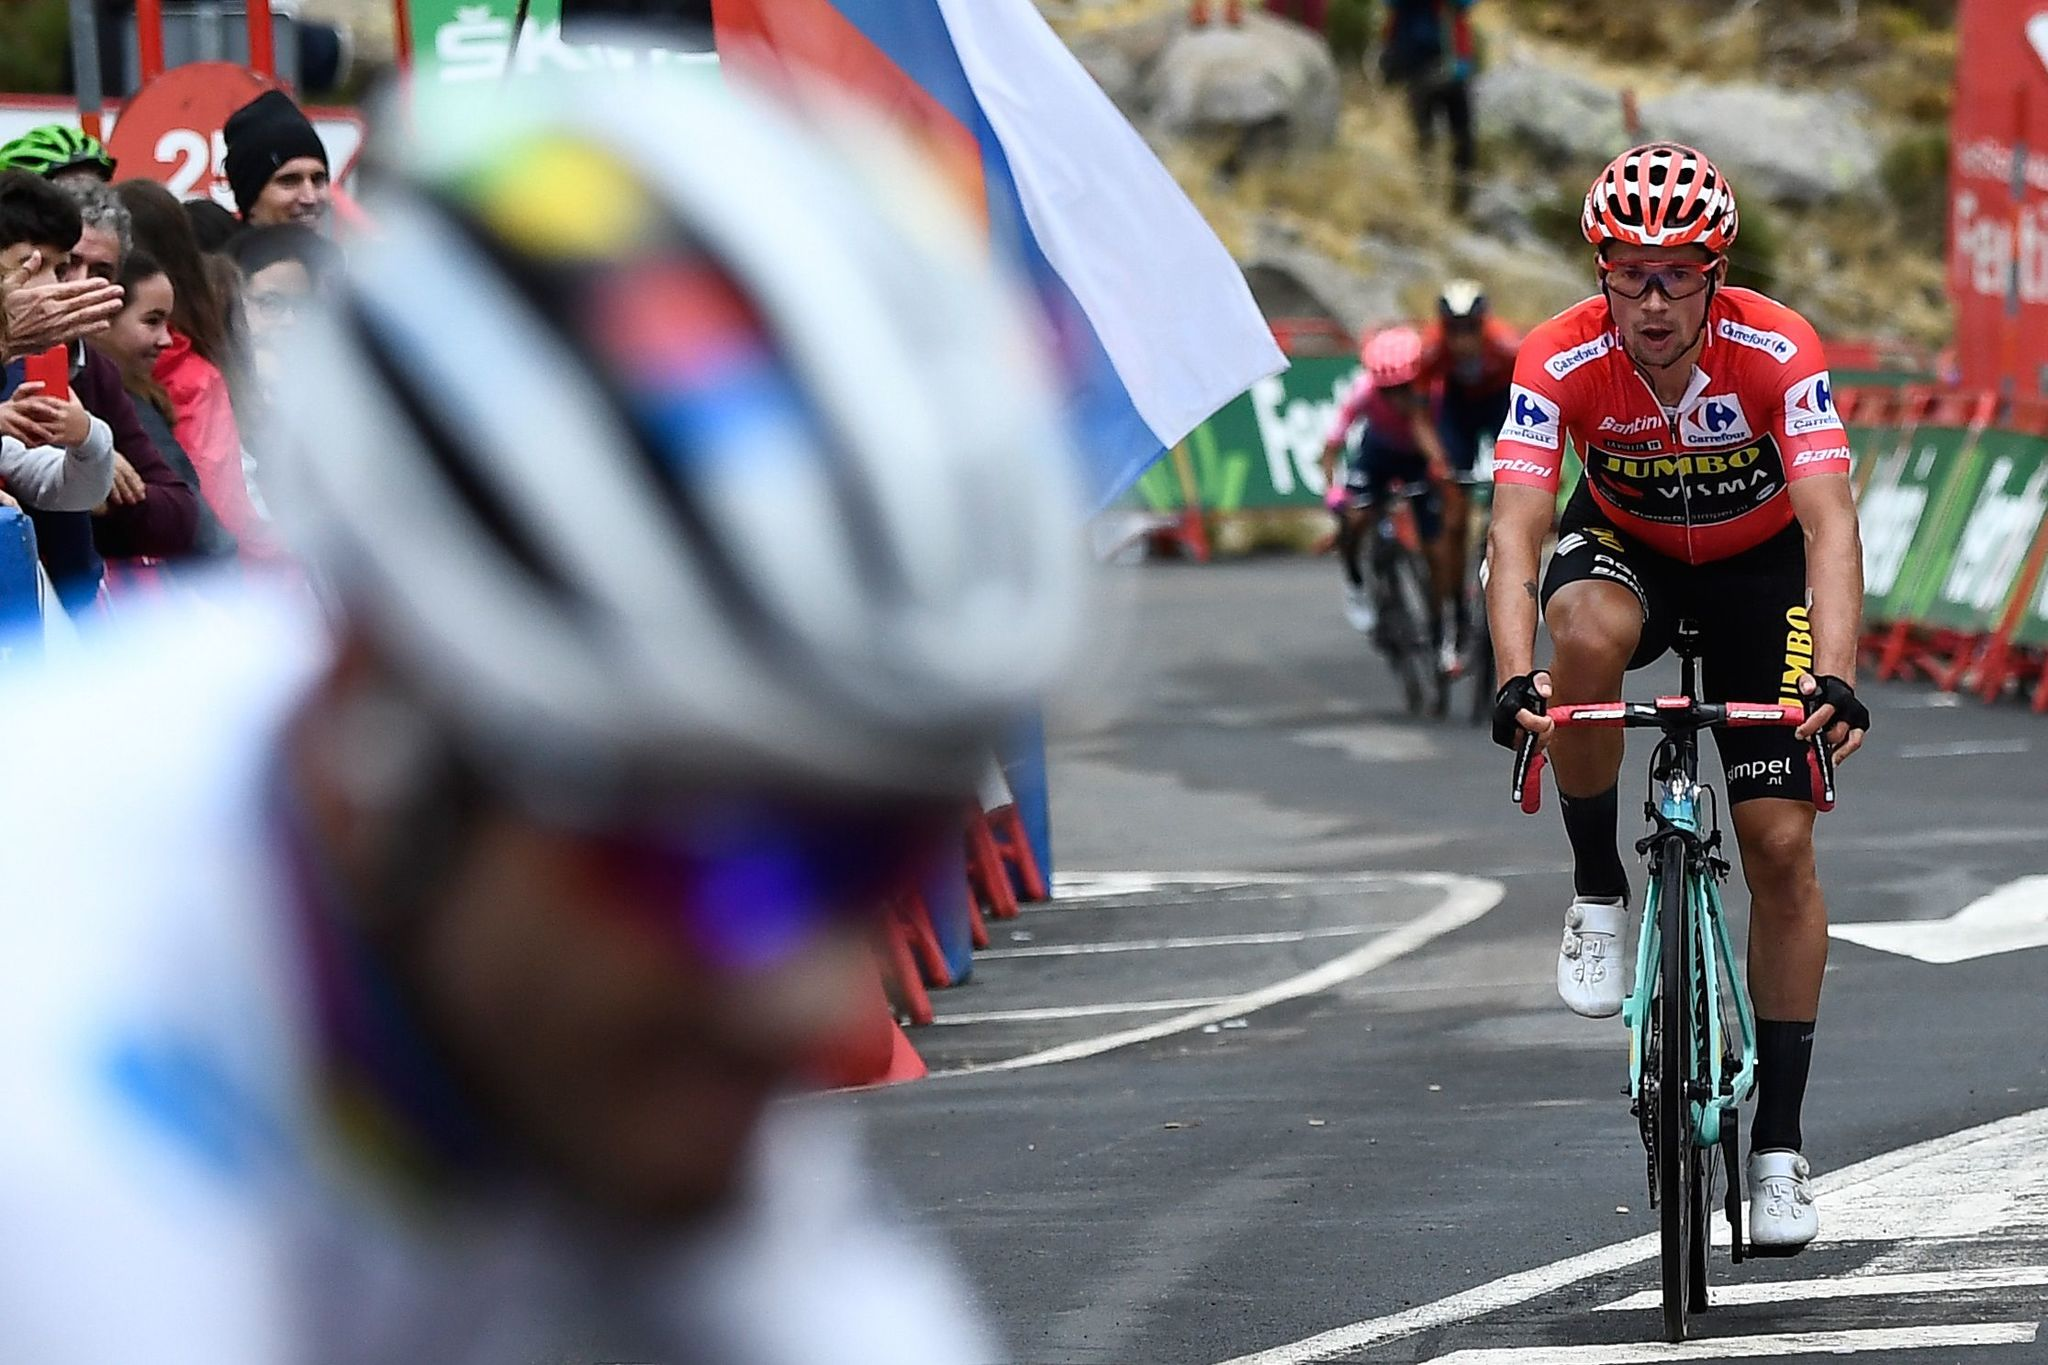 Team Jumbo rider Slovenias Primoz <HIT>Roglic</HIT> (R) crosses the finish line next to Team Movistar rider Spains Alejandro Valverde (L) at the end of the 20th stage of the 2019 La Vuelta cycling Tour of Spain, a 190,4 km race from Arenas de San Pedro to Plataforma de Gredos on September 14, 2019. (Photo by OSCAR DEL POZO / AFP)